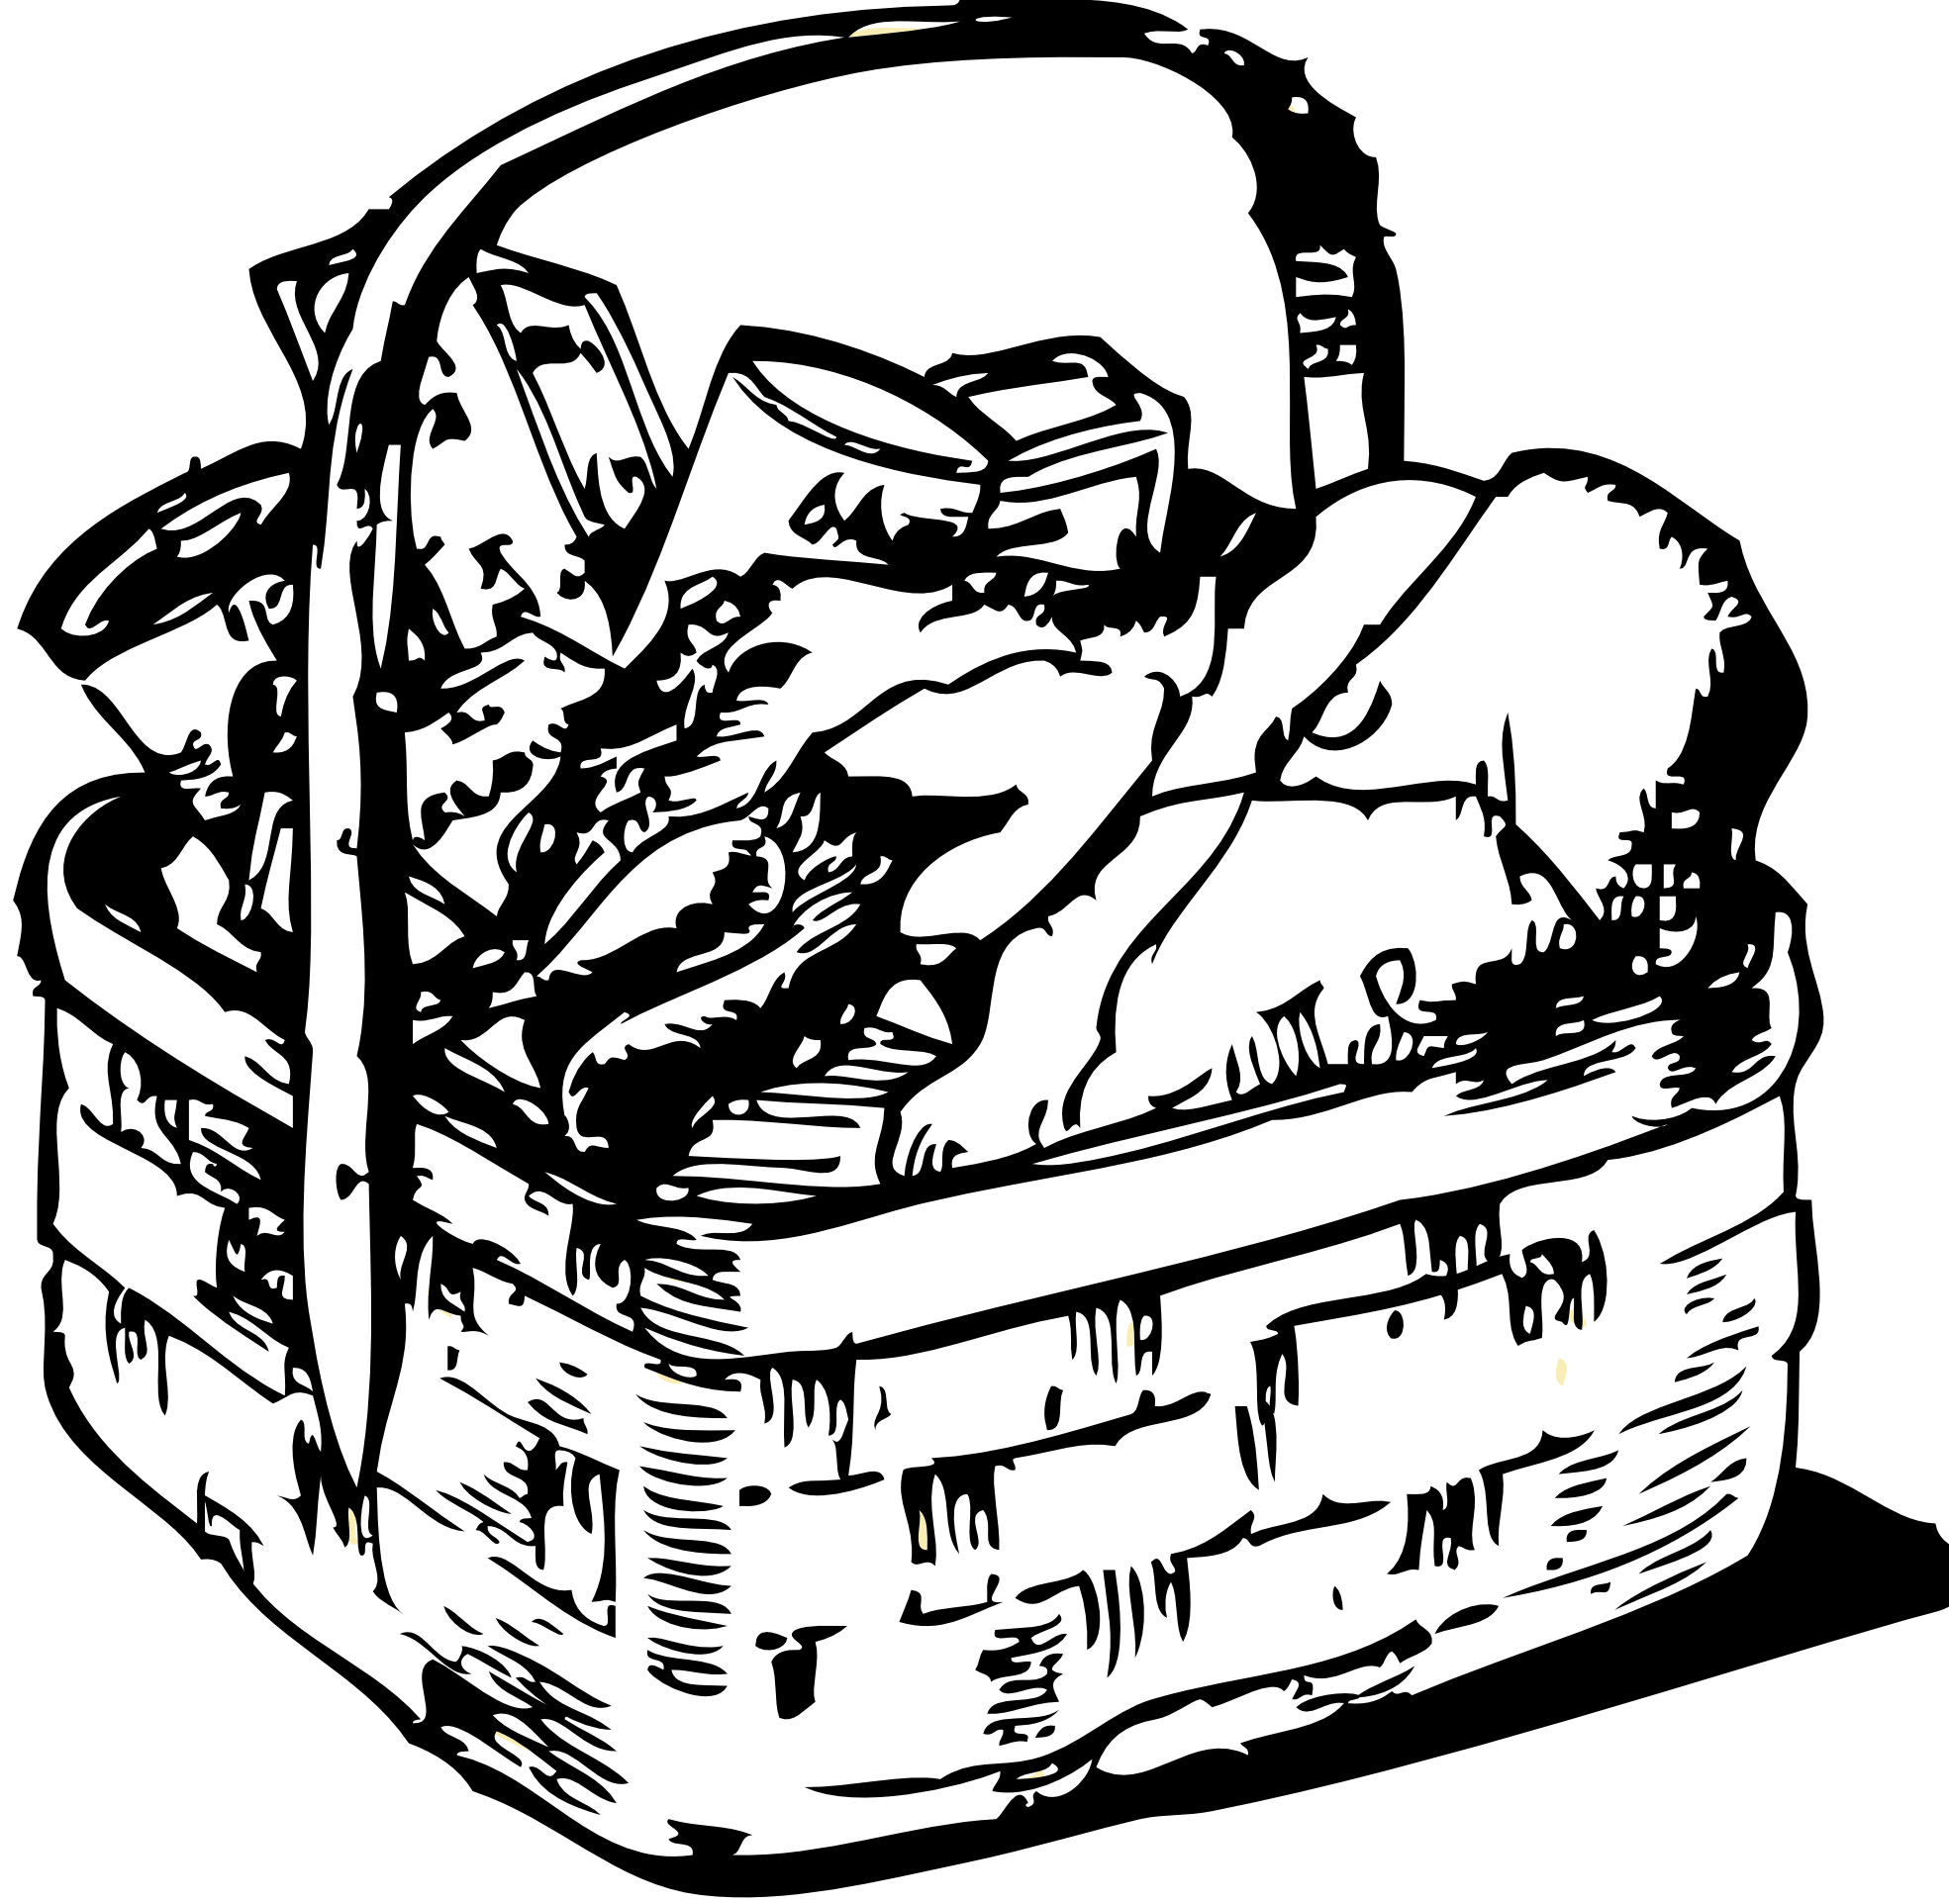 Book basket clipart vector royalty free Black And White Clip Art Food Clipart Best, Laundry Bag Clip Art ... vector royalty free